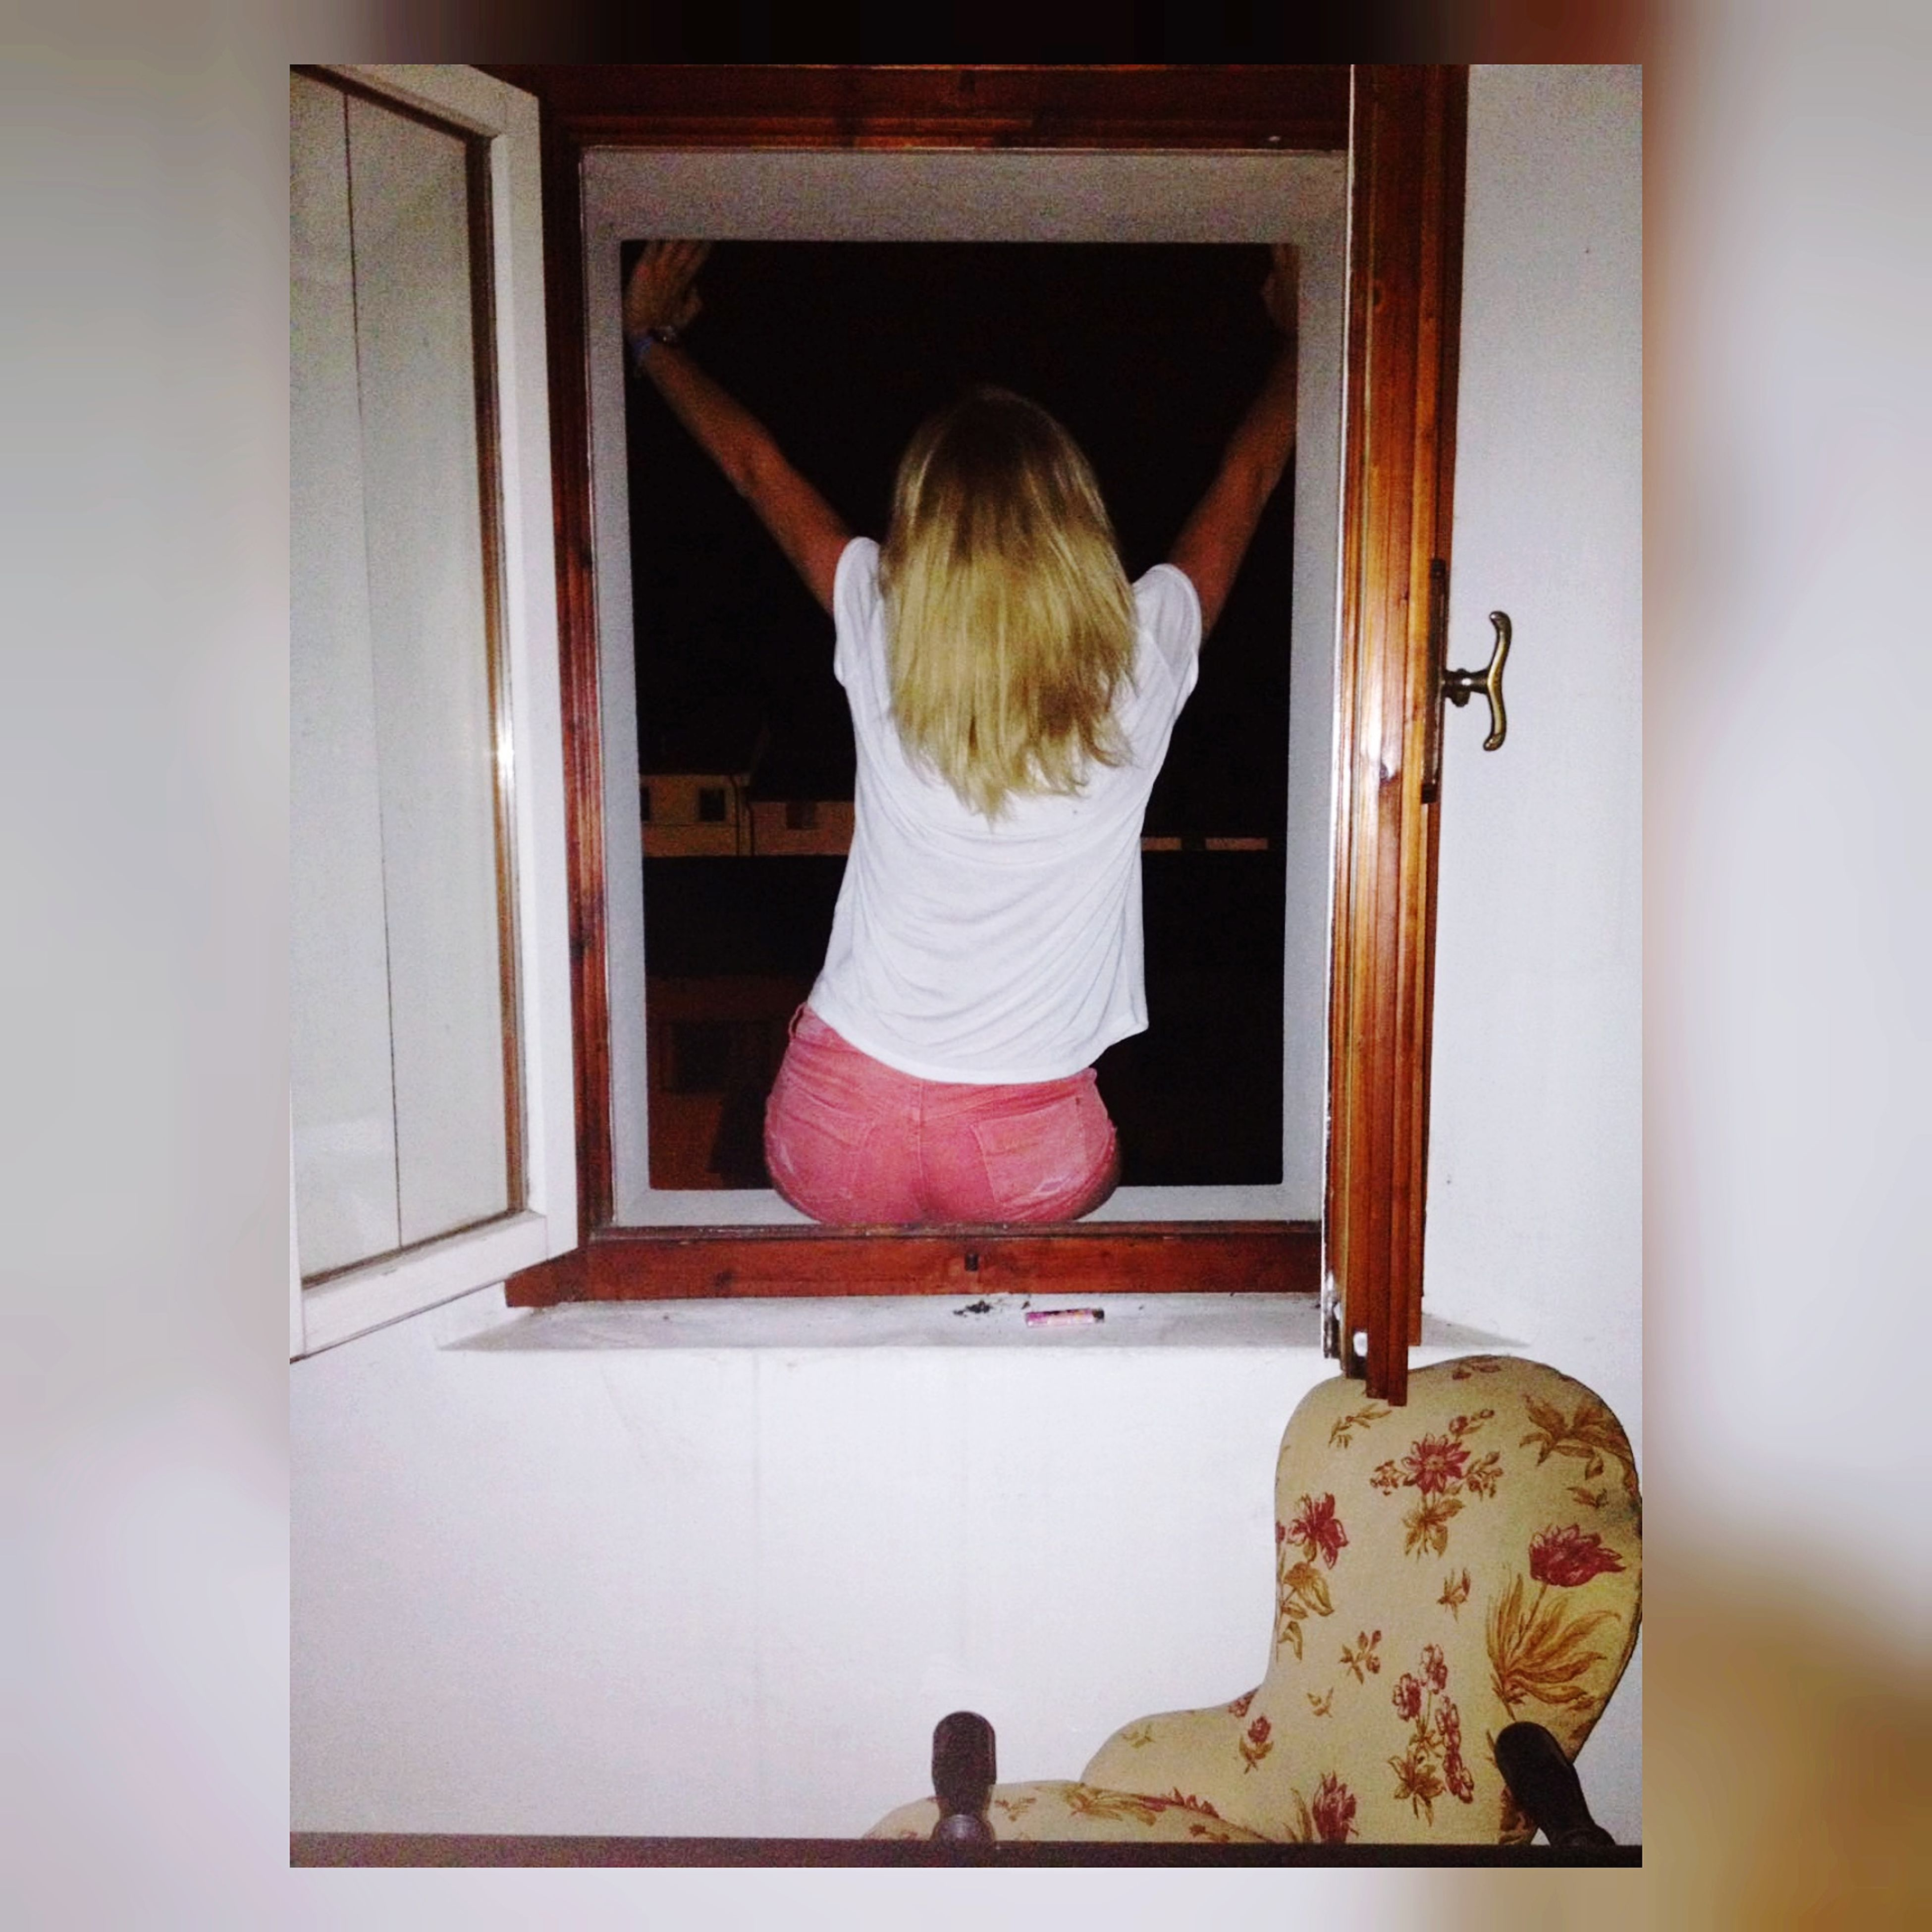 real people, rear view, one person, indoors, leisure activity, open, lifestyles, childhood, home interior, blond hair, day